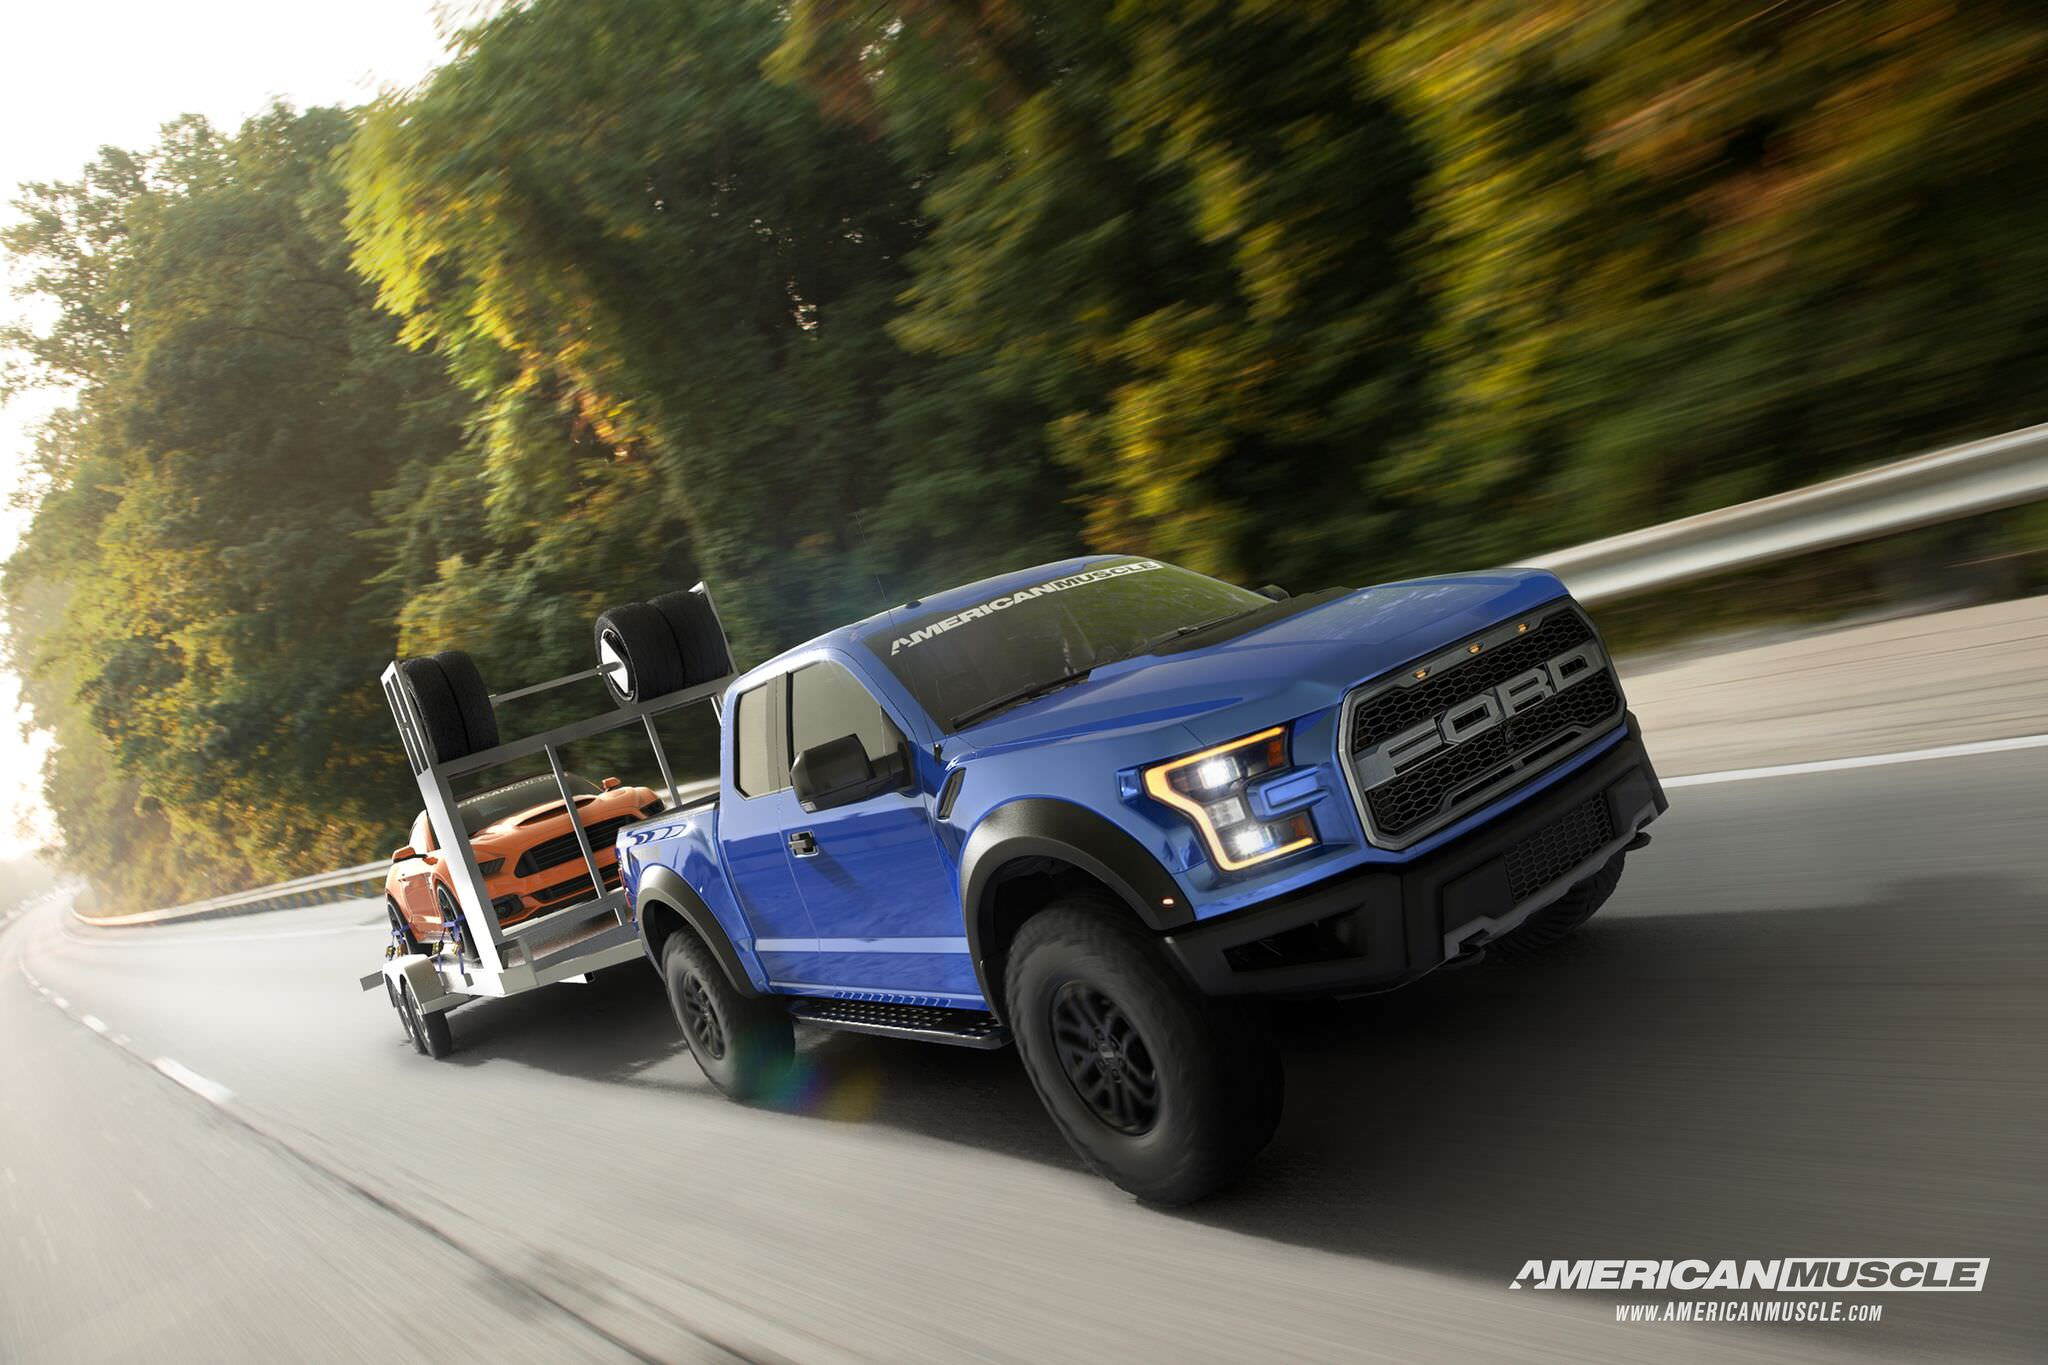 Live now: win a 2017 ford raptor, 850+ hp mustang & racing trailer from americanmuscle